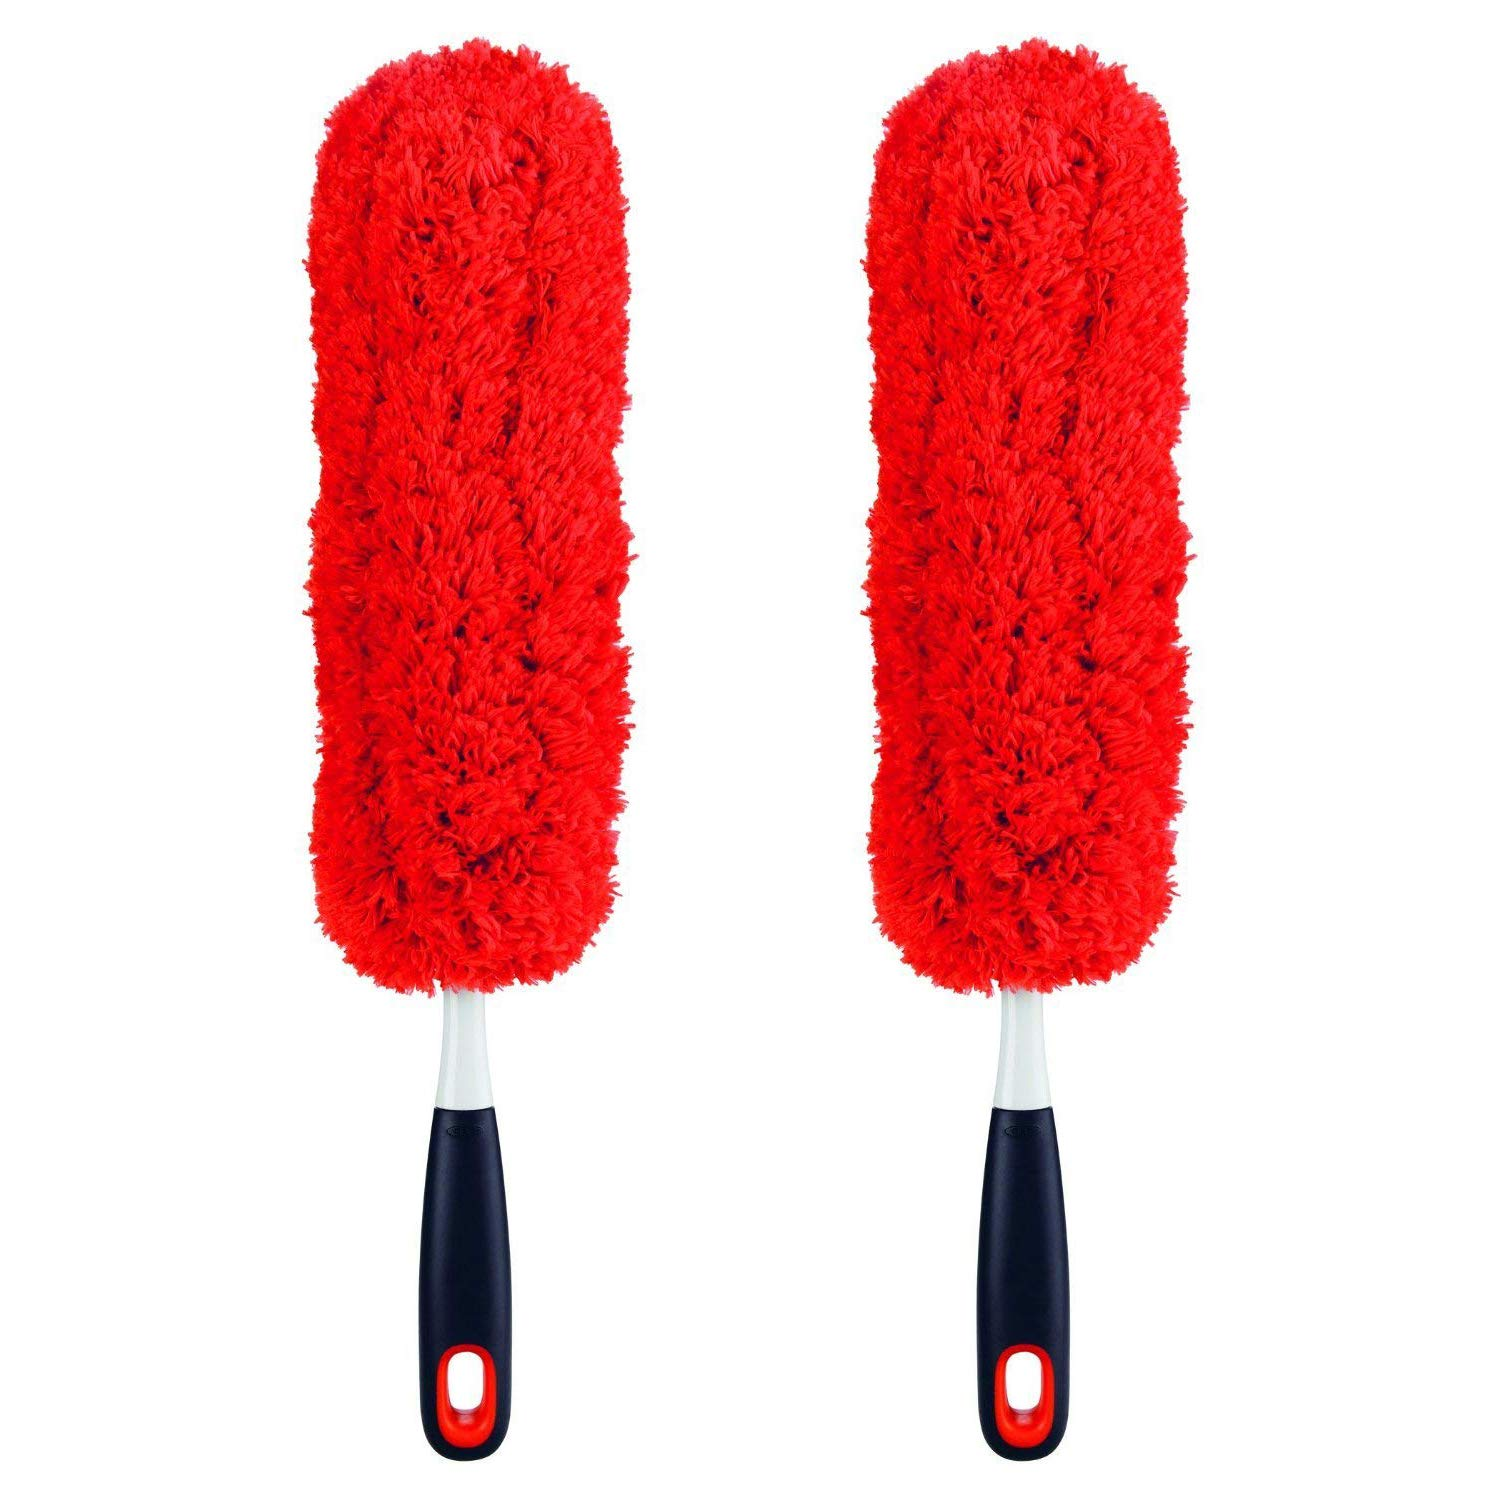 OXO Good Grips Microfiber Hand Duster 1335180